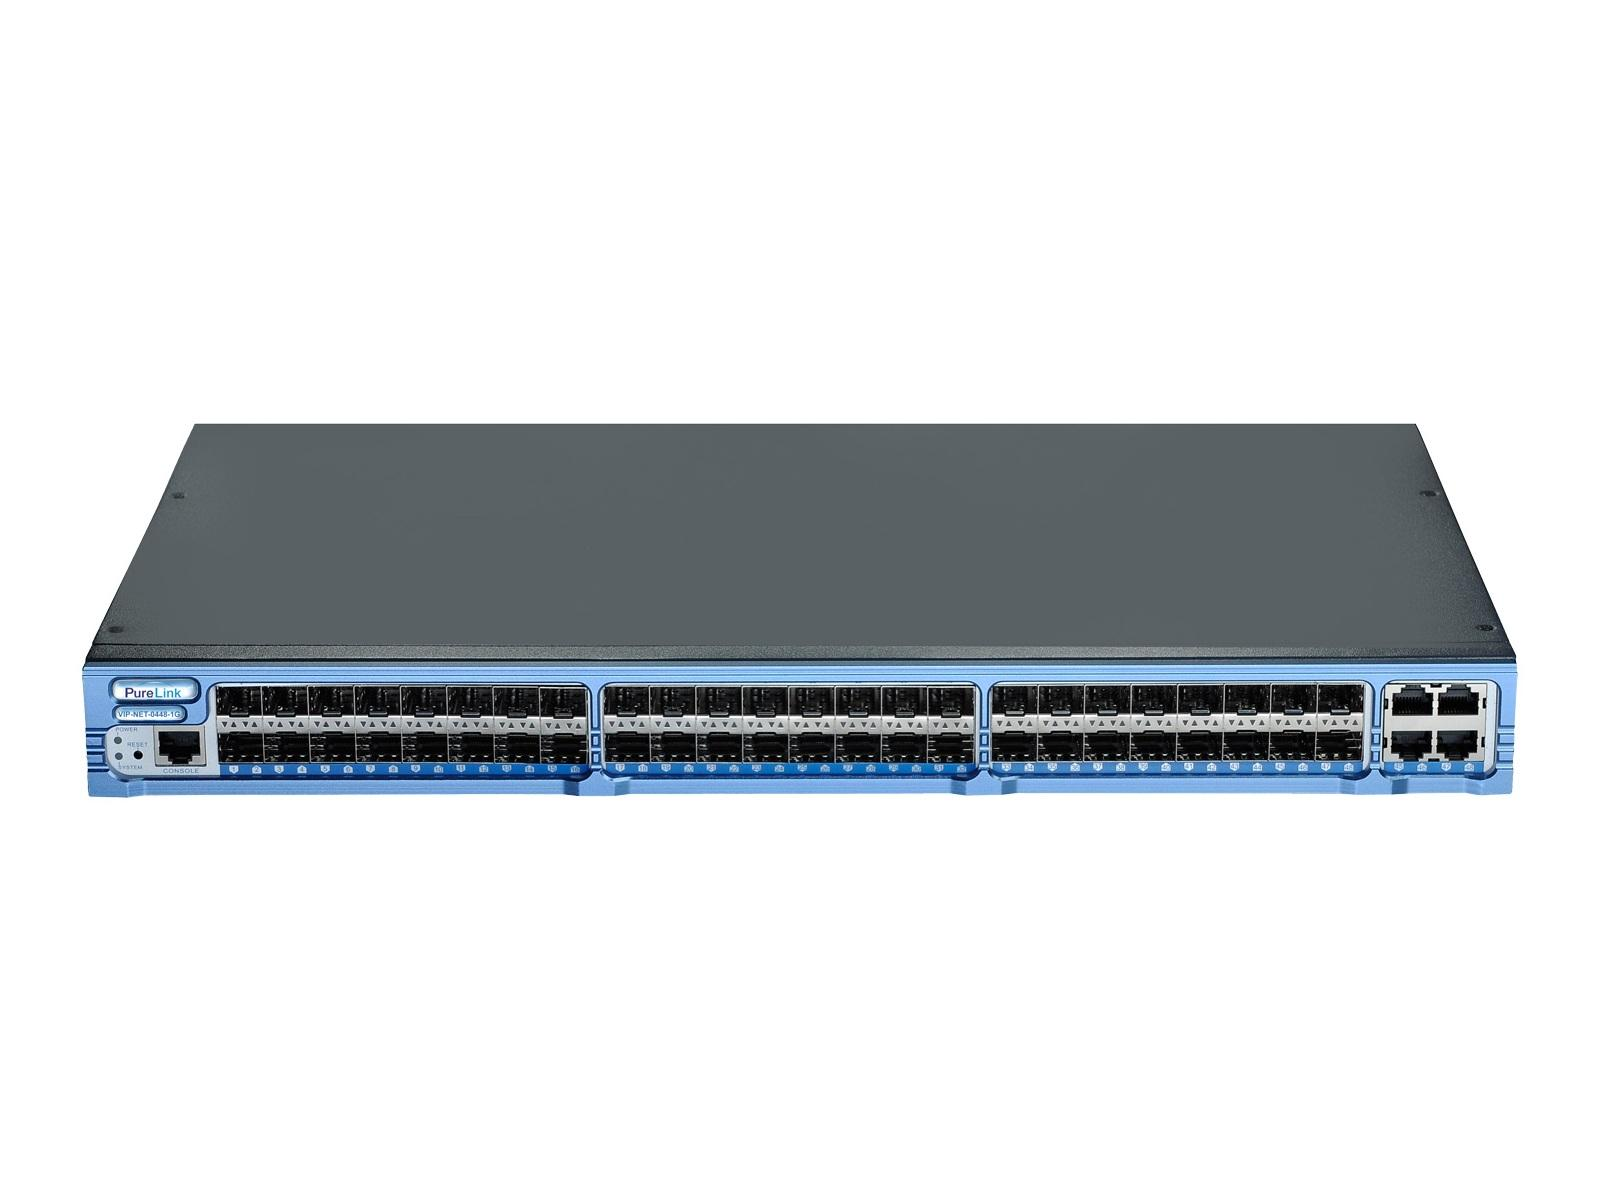 PureLink VIP-NET-0448-1G Gigabit Network Switch/48 Port 1000Base-X SFP/4 Port 1000Base-T